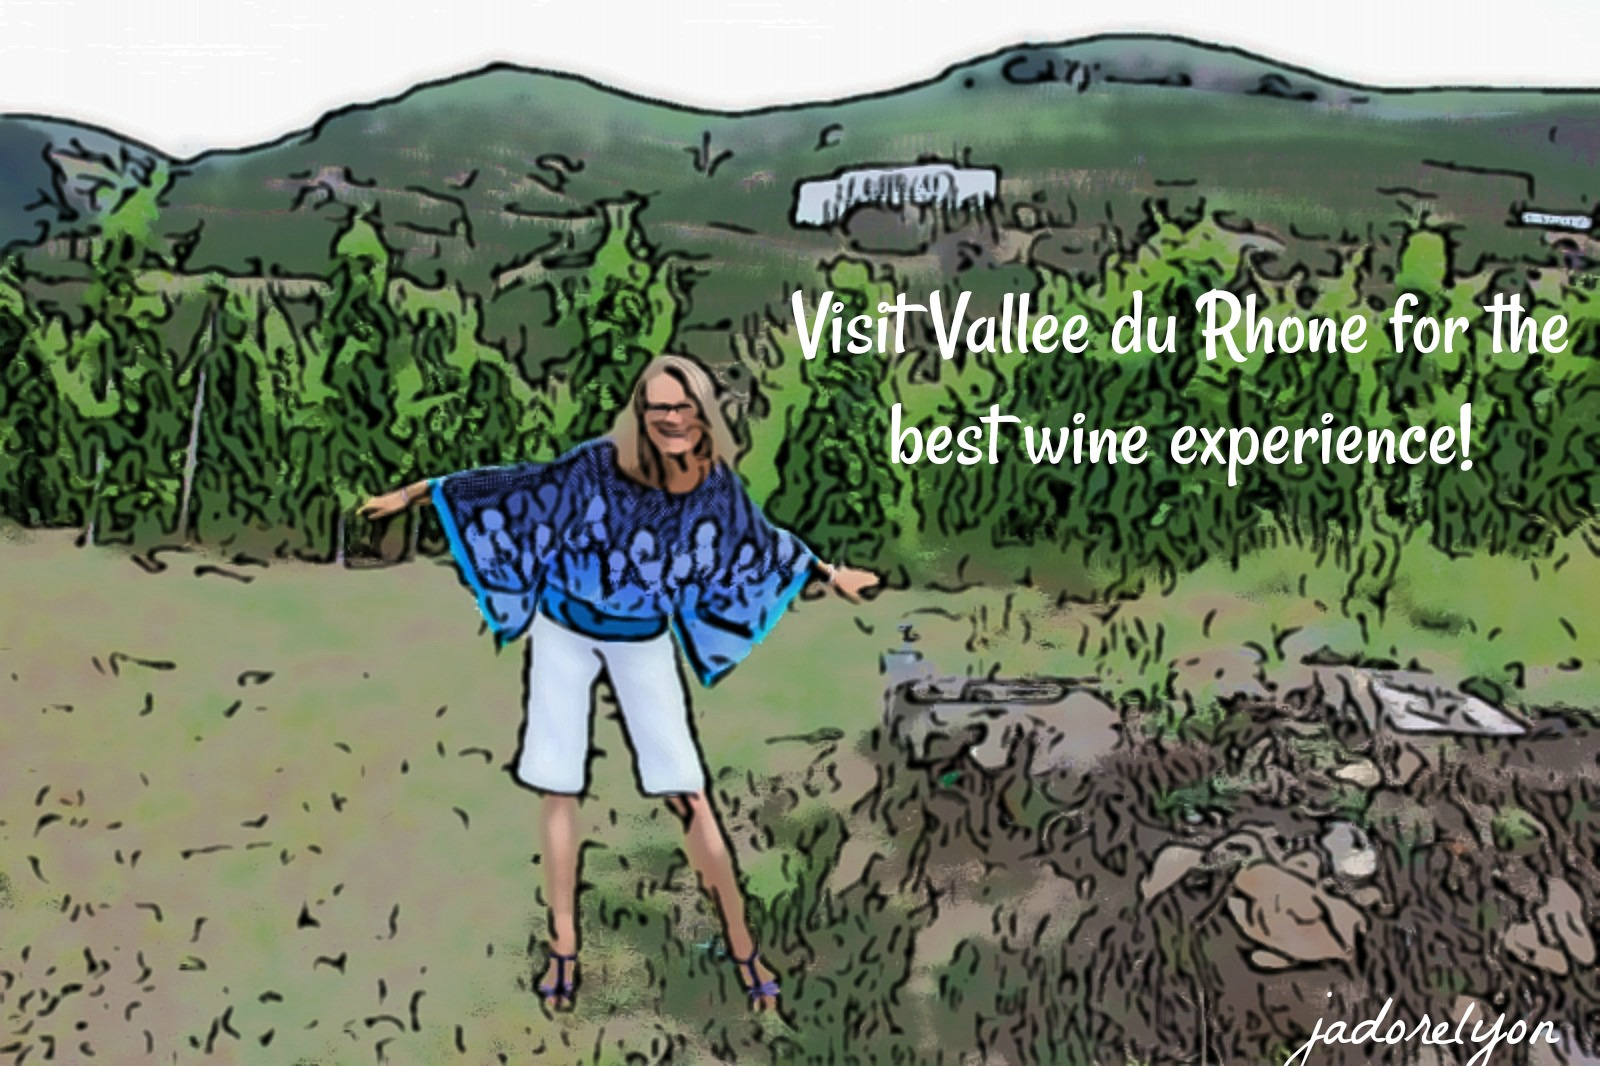 Visit Vallee du Rhone for the best wine experience!